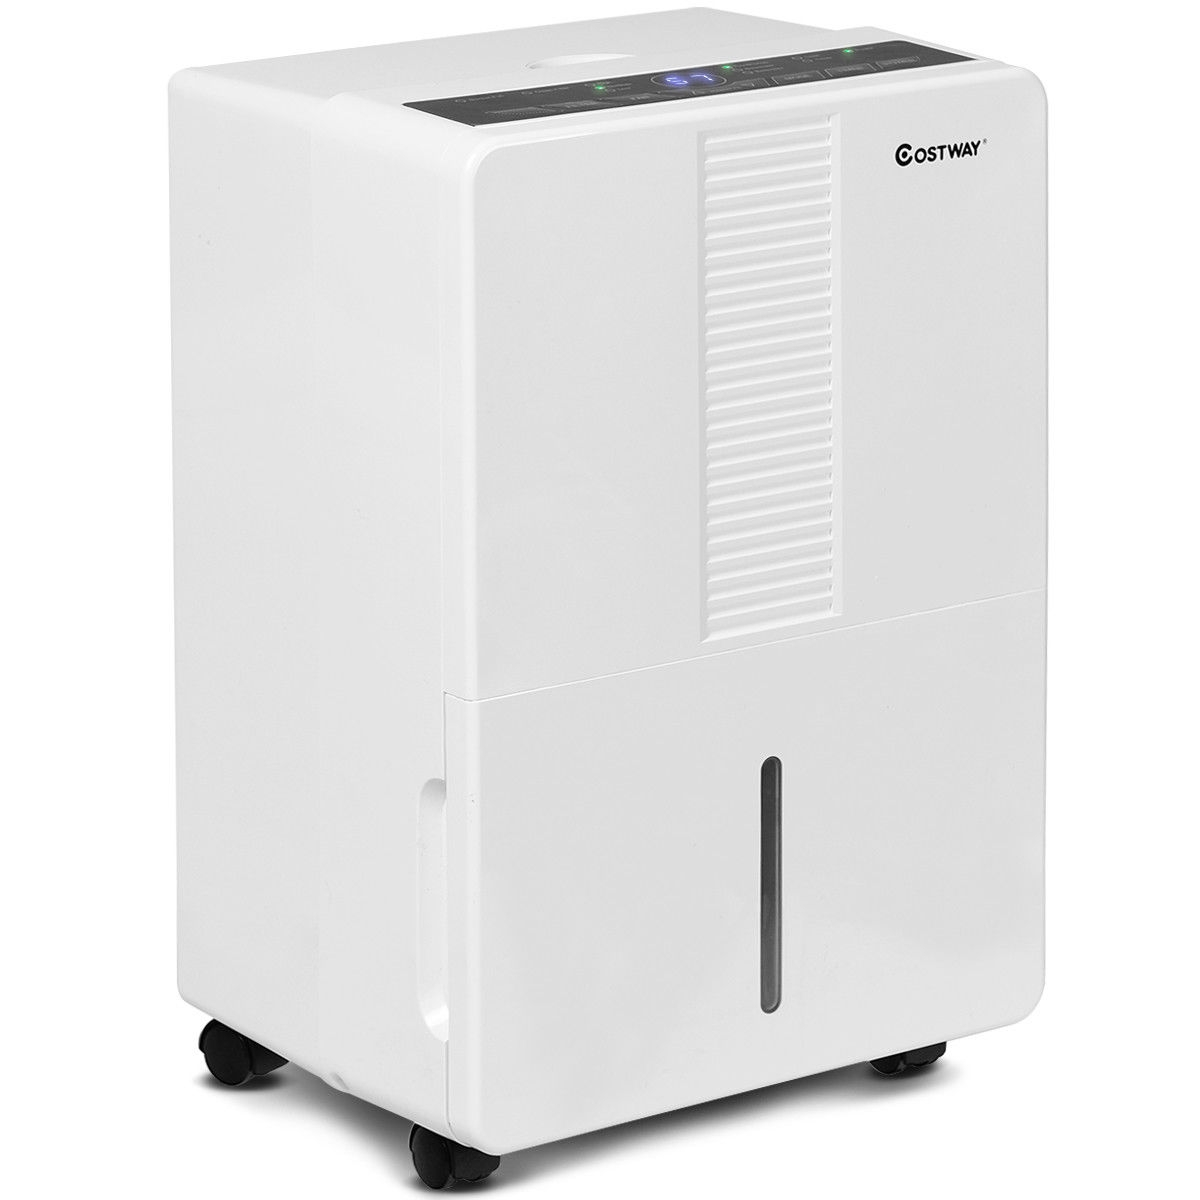 Portable 30 Pint Humidity Control up to 1500 Sq.Ft. Dehumidifier